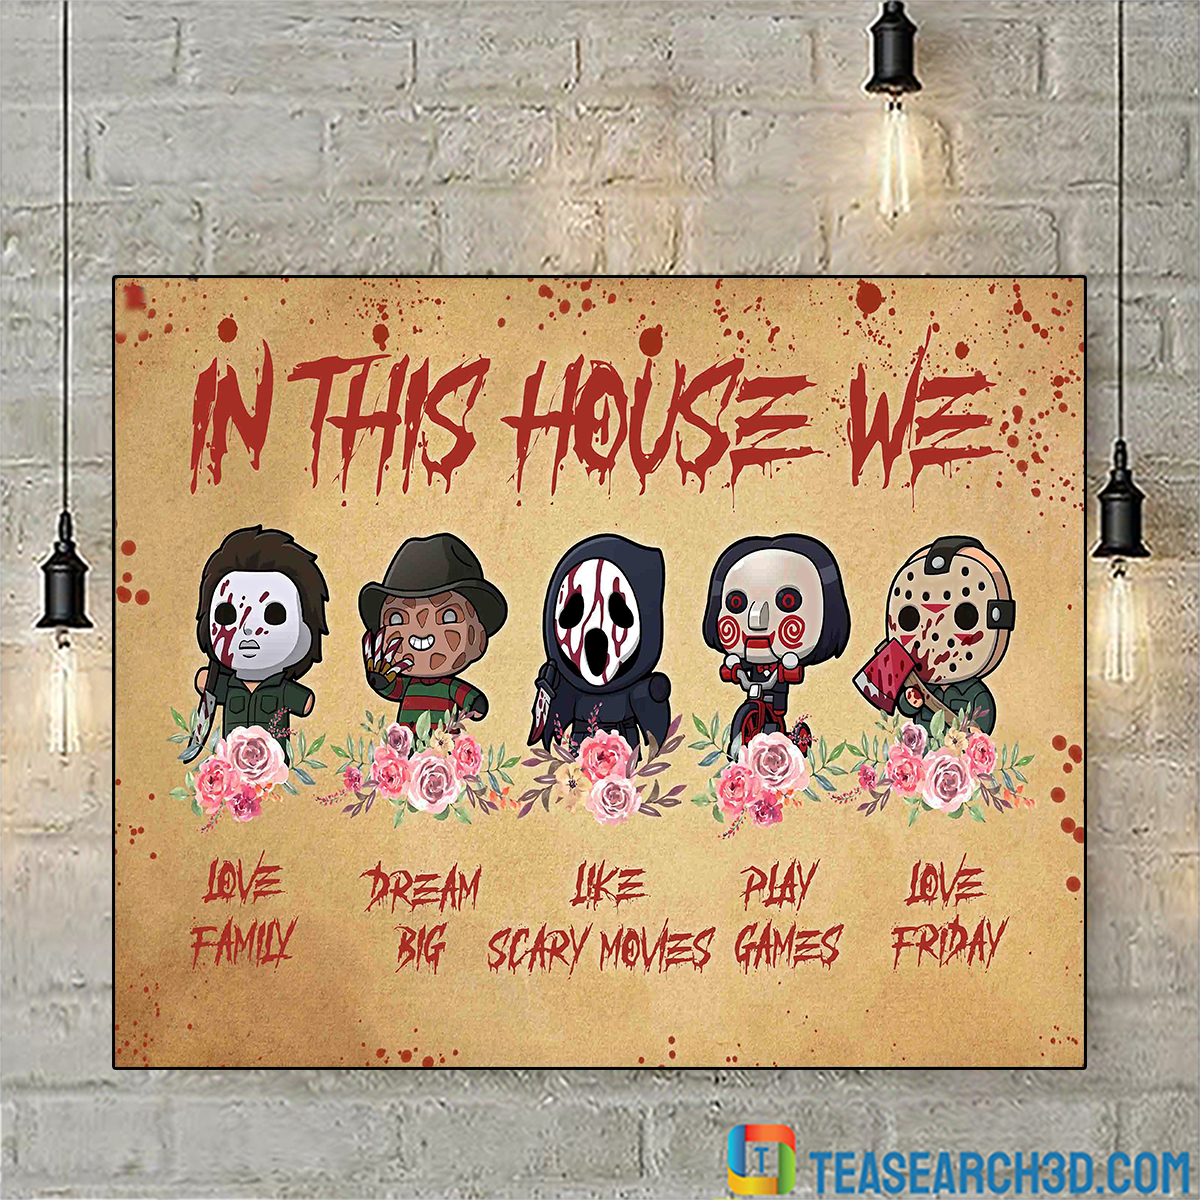 In this house we love family dream big like scary movies play games love friday poster